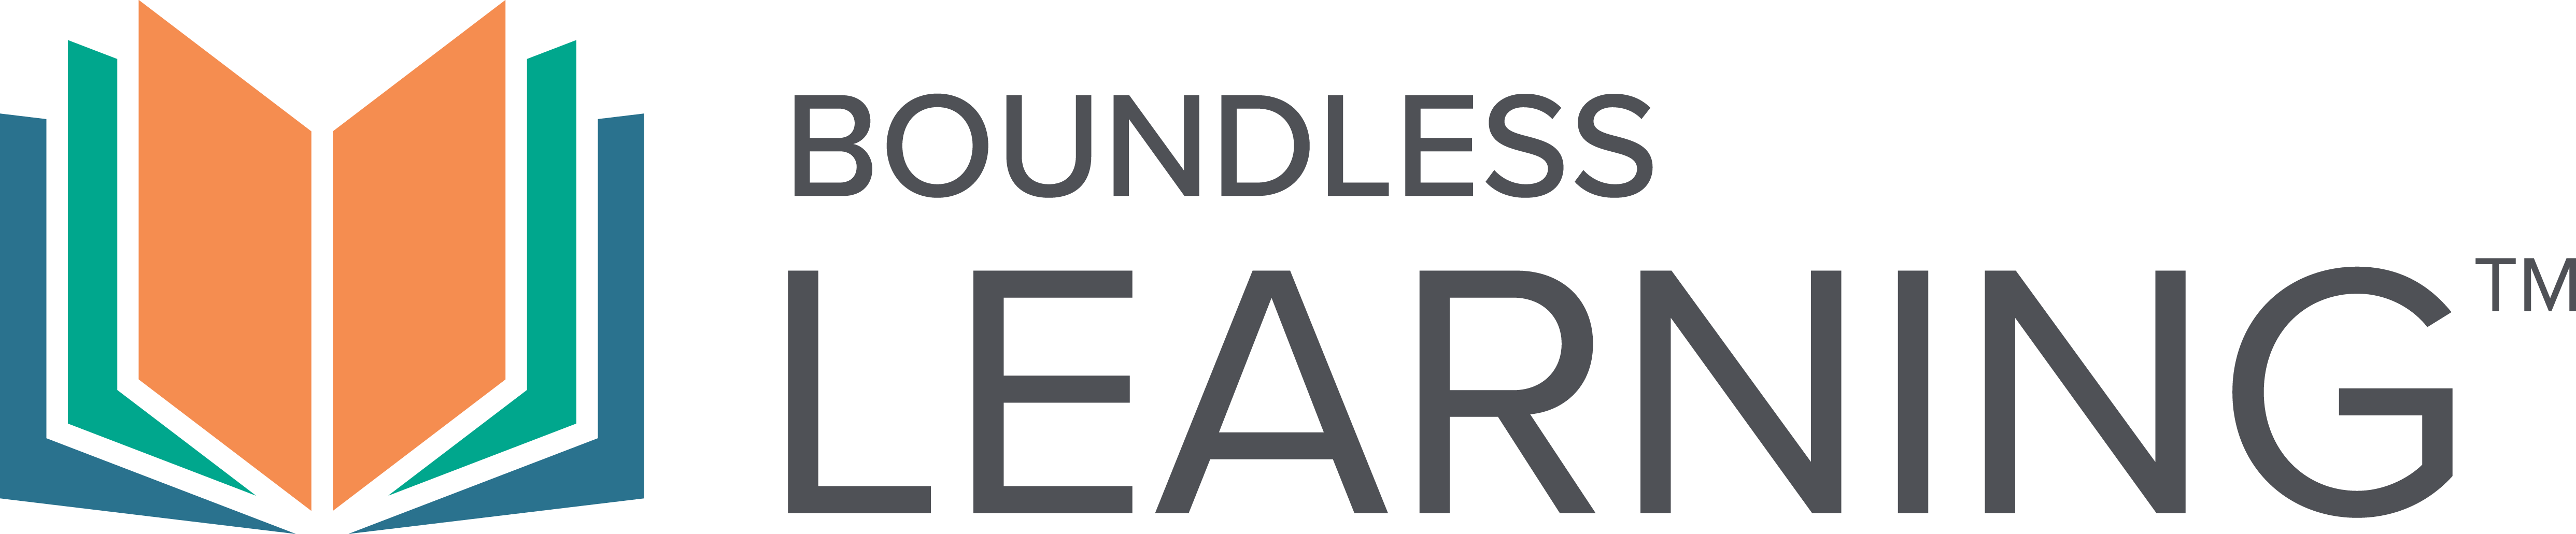 Boundless Learning